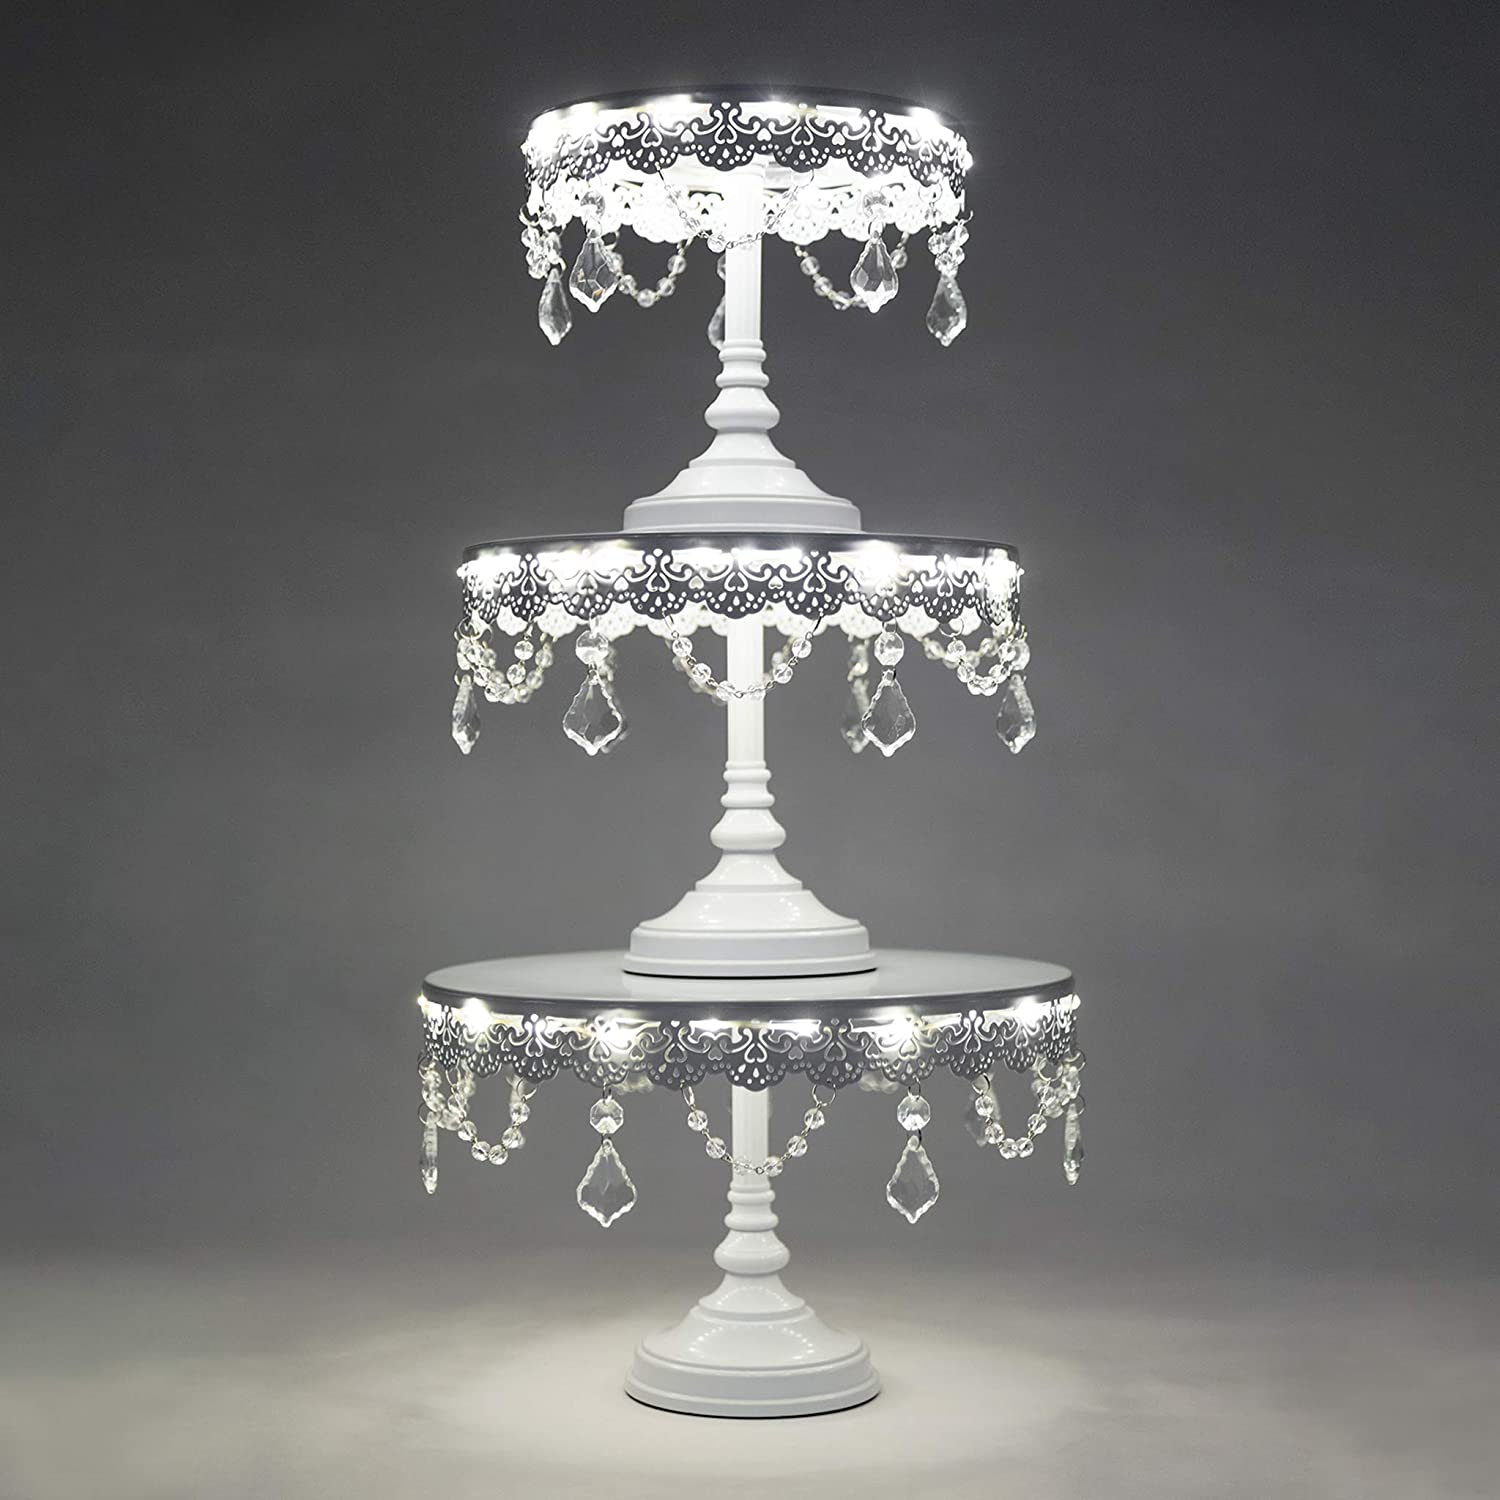 Aurora 3-Piece White Rechargeable LED Cake Stand Set, Round Metal Crystal Cupcake Dessert Display Pedestal Wedding Party Display, Chargers Included